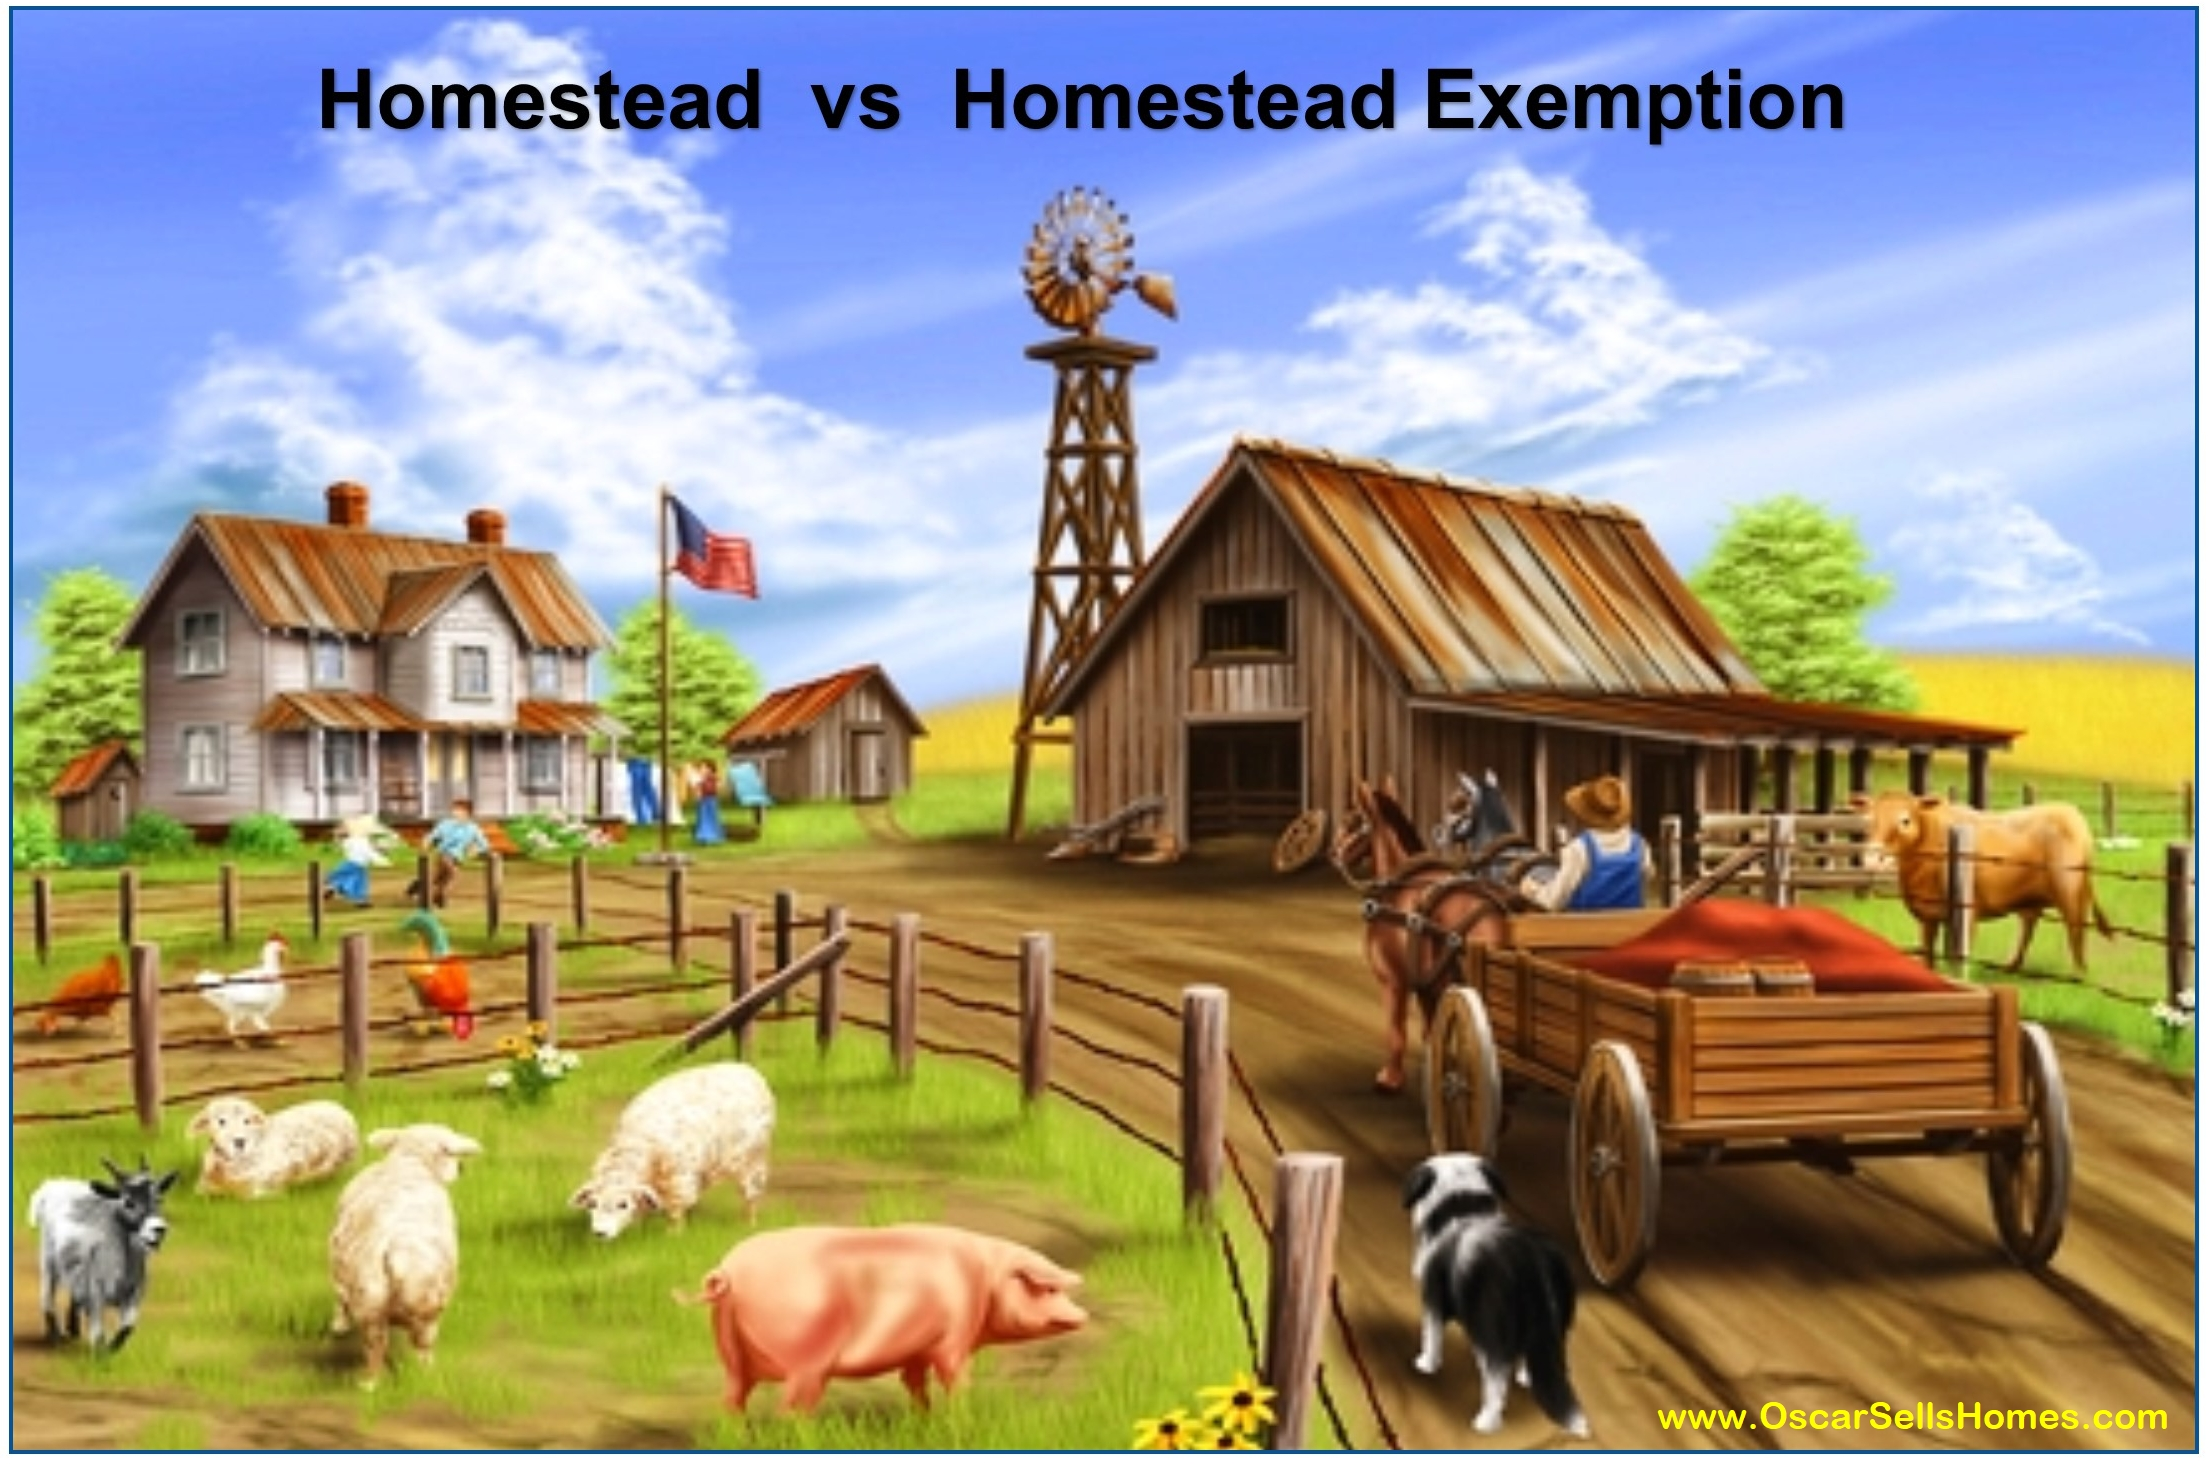 Homestead Exemption : Oscar Castillo - Broker Associate (858)775-1057